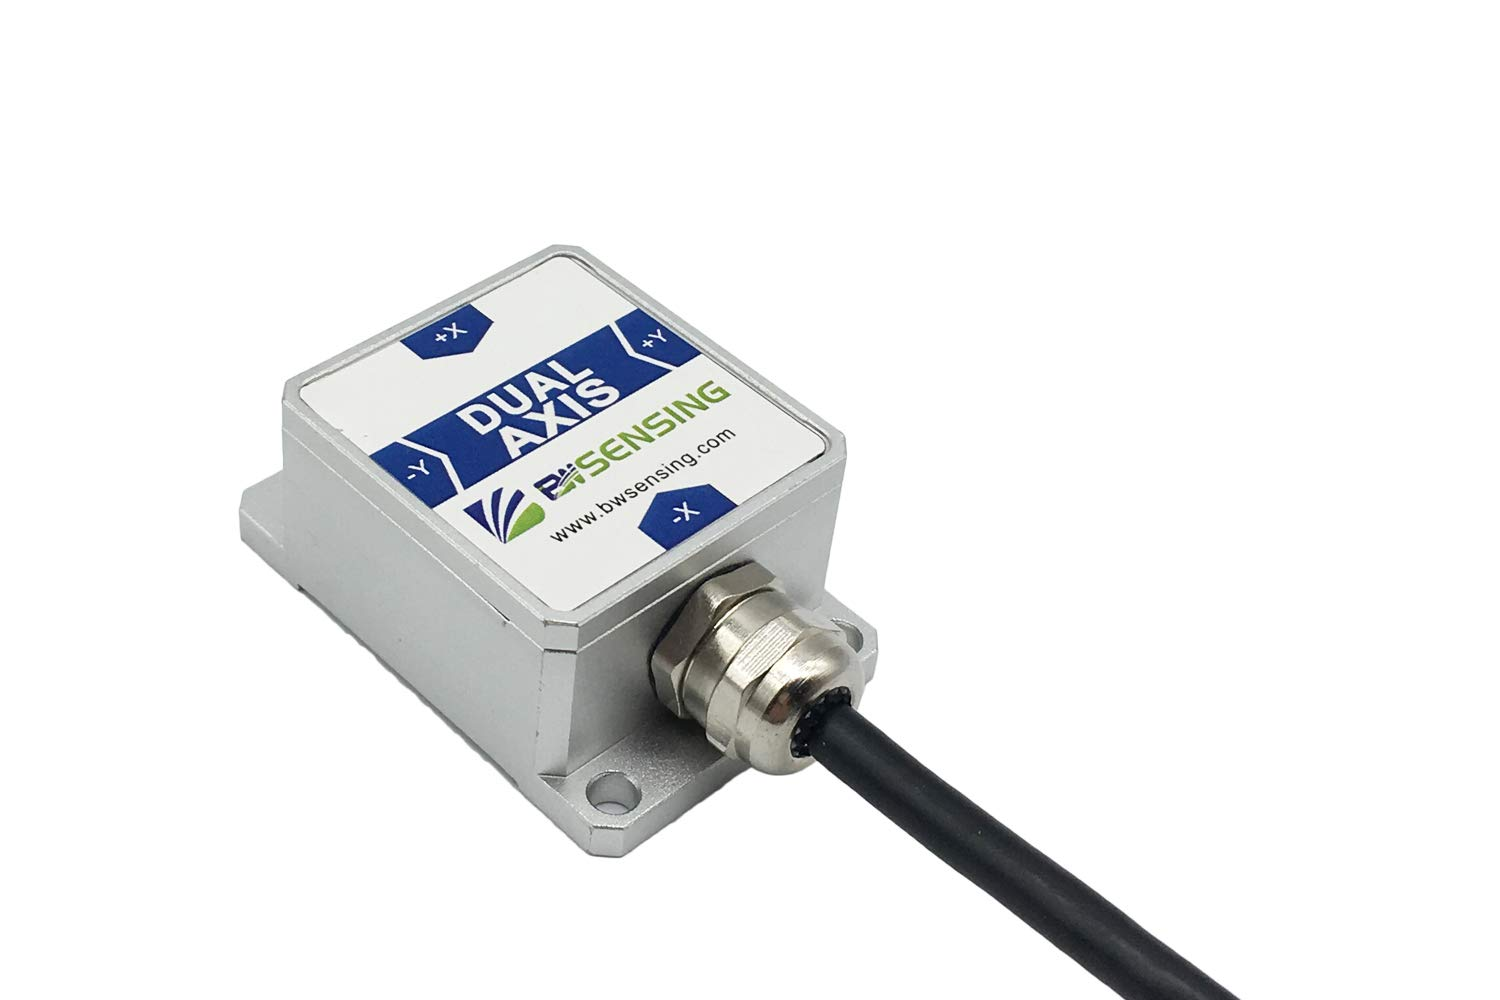 BWK227 Tilt Angle Sensor Dual Axis Inclinometer with Accuracy 0.2 Degree RS485